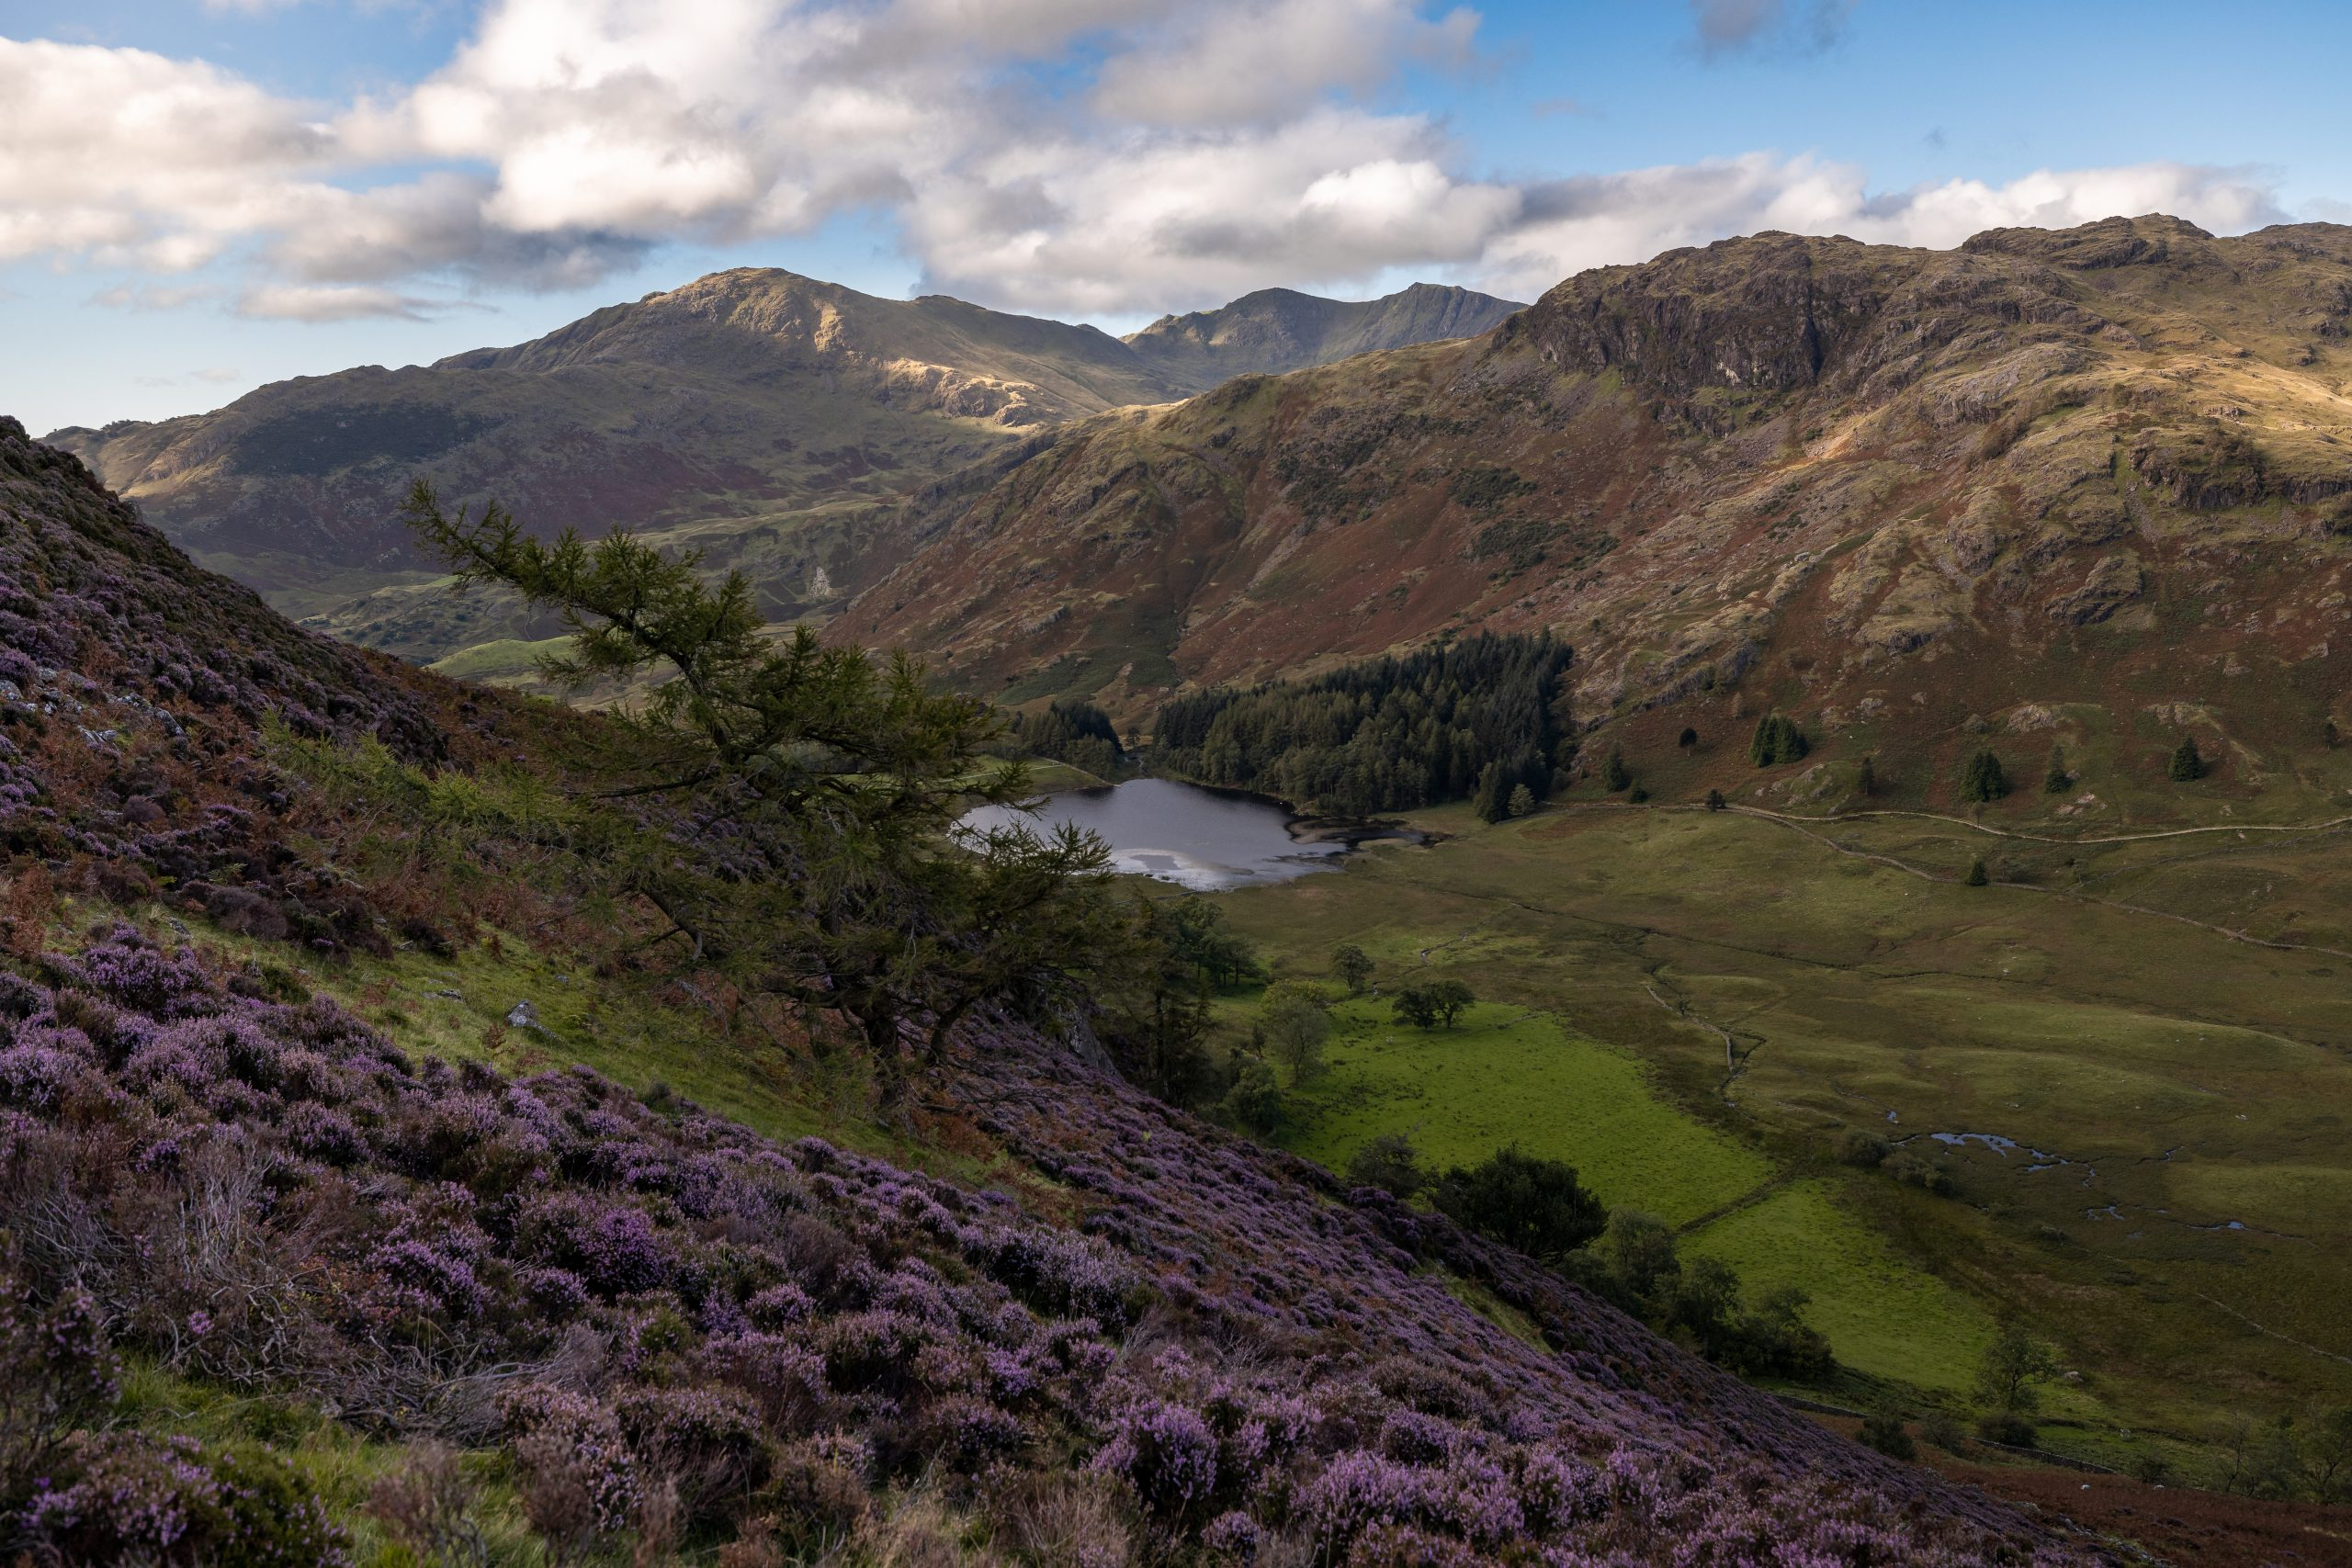 A view of Blea Tarn and Wetherlam at dawn seen from Side Pike in the Langdale Valley